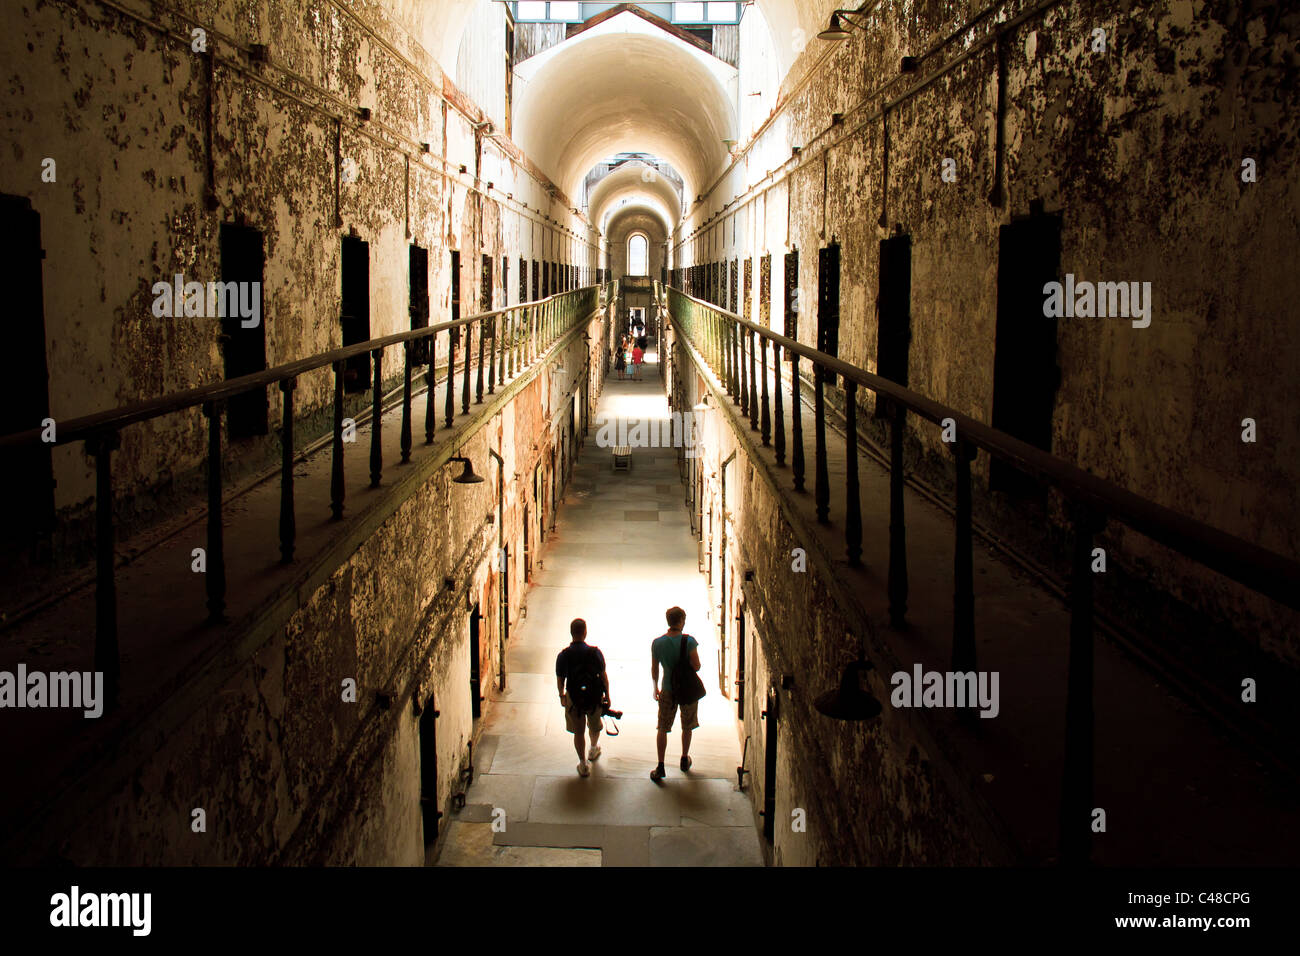 Tourists walk down a crumbling cellblock at Eastern State Penitentiary in Philadelphia, Pa. The prison is said to - Stock Image